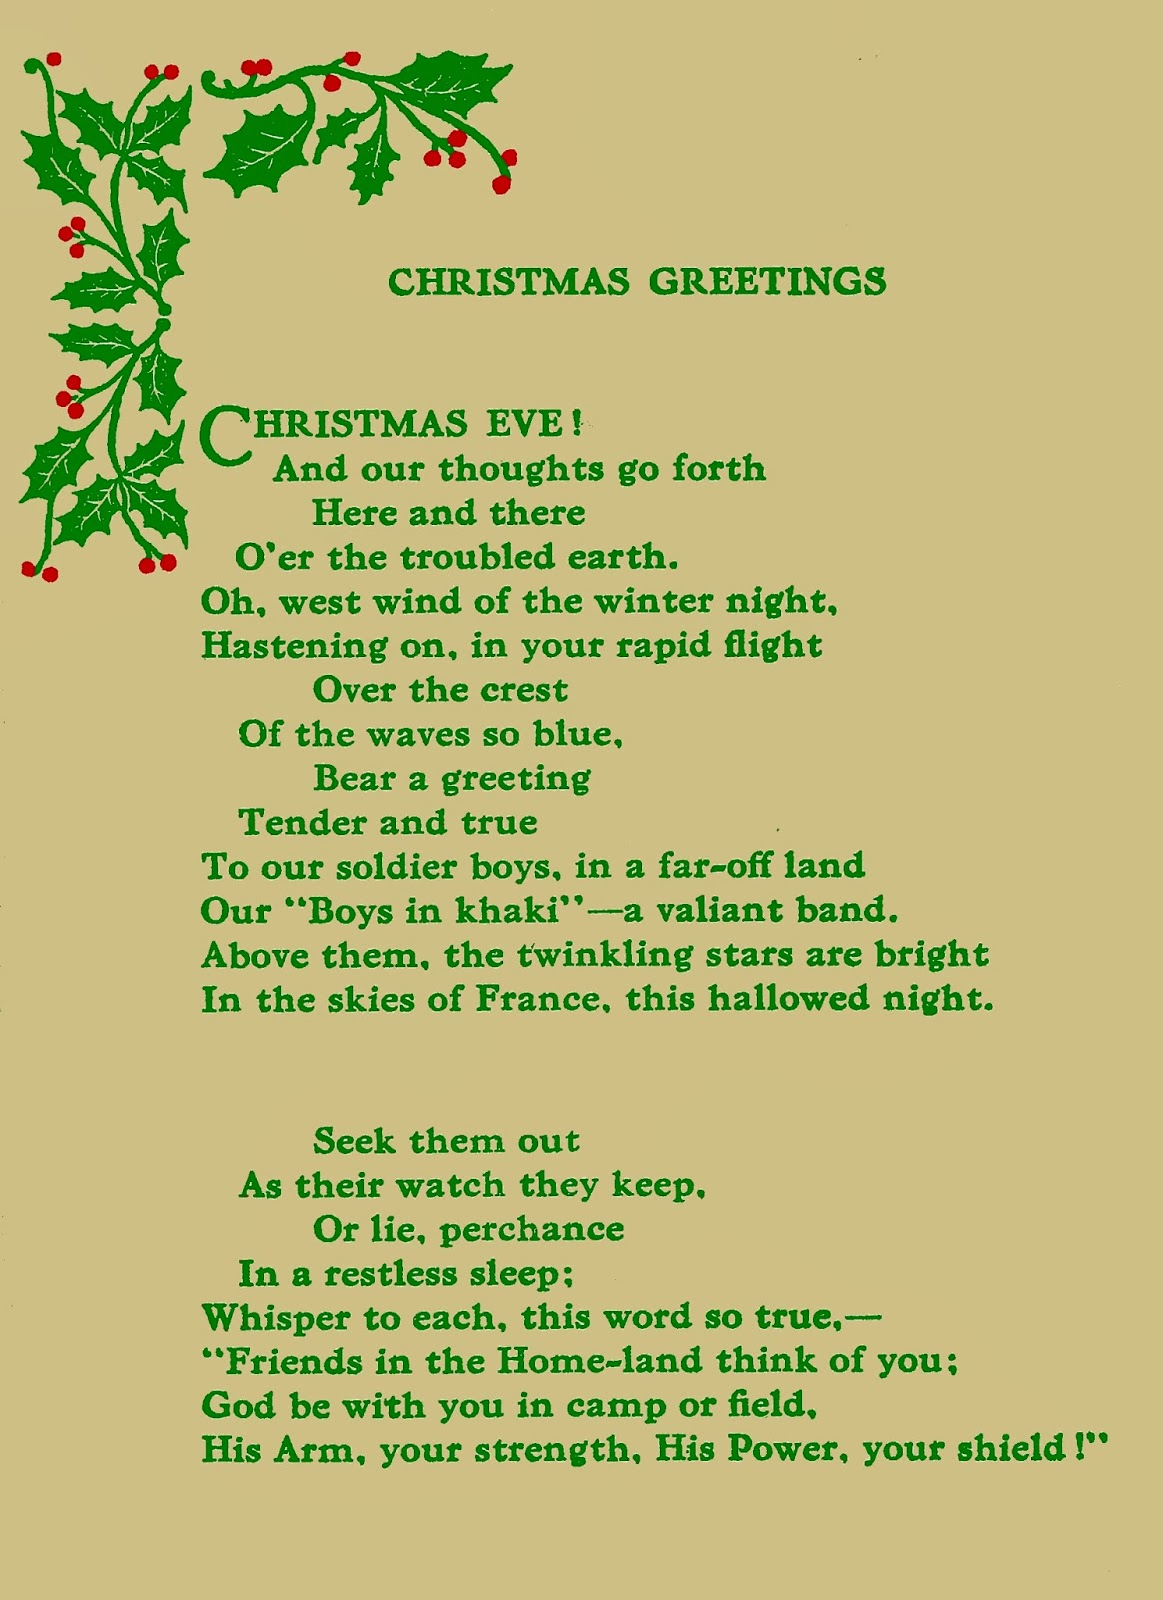 : Lovely vintage Christmas poem for those serving in the Armed Forces